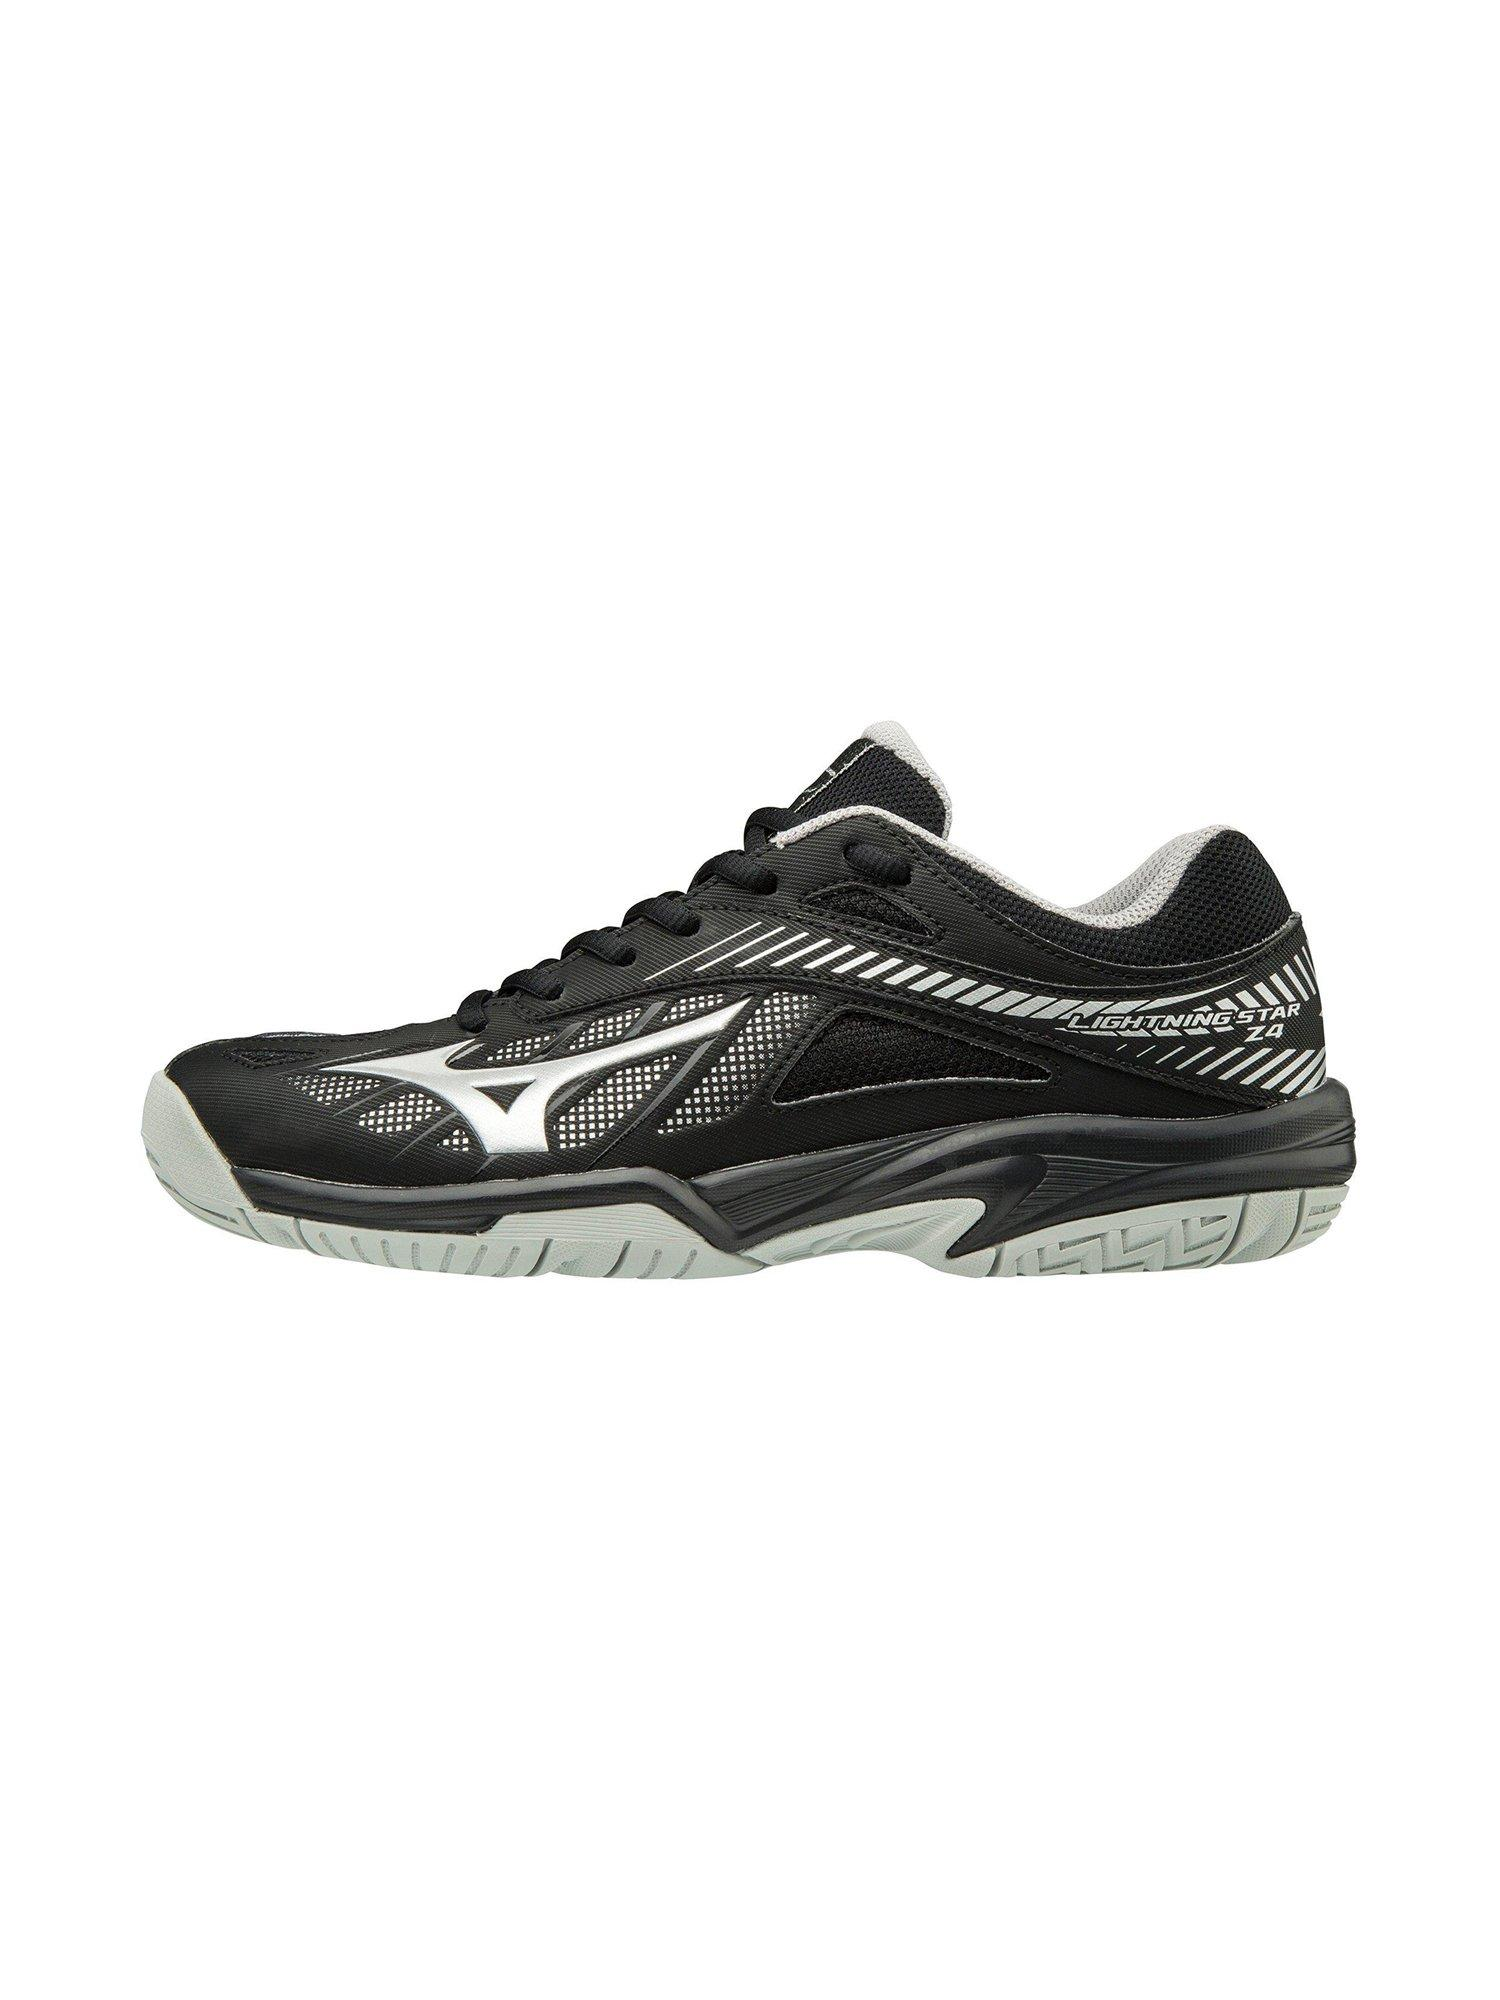 Mizuno Youth Volleyball Shoes - Lightning Star Z4 Junior Volleyball Shoes -...